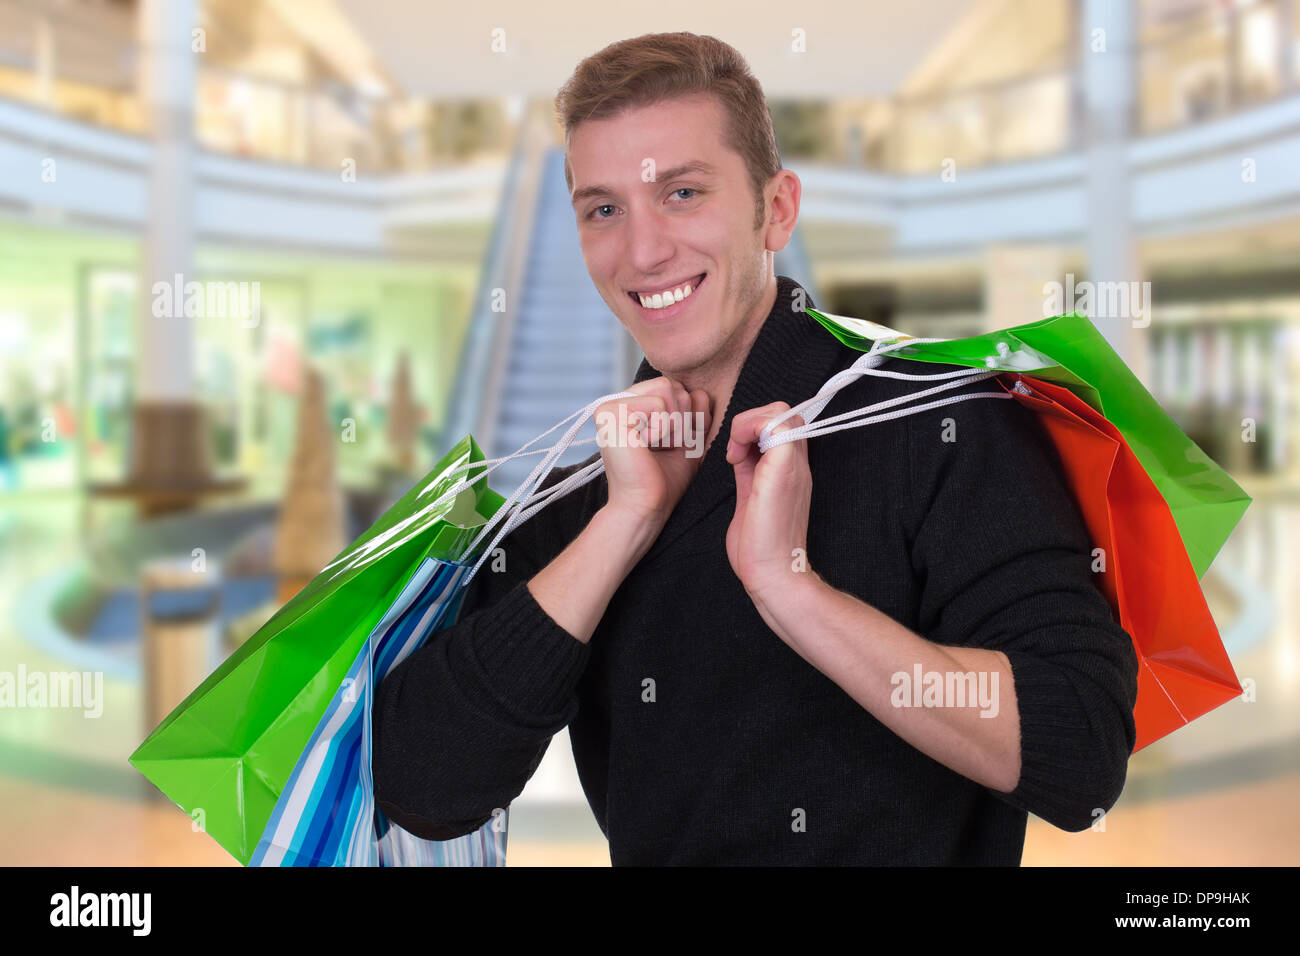 Smiling young man shopping or buying in a store or mall - Stock Image